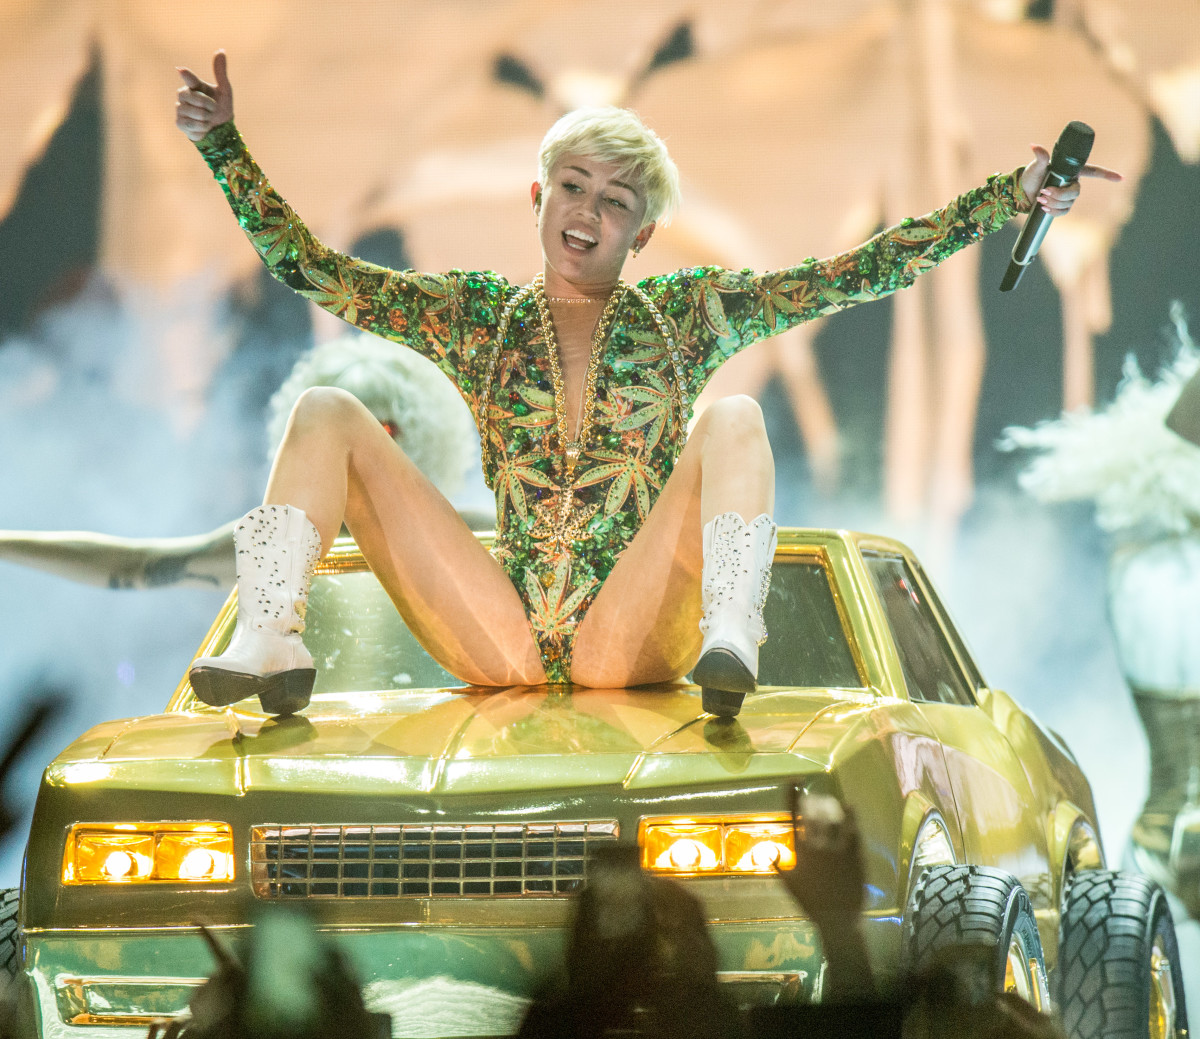 Miley Cyrus on her 2014 'Bangerz' tour. Photo: Christopher Polk/Getty Images